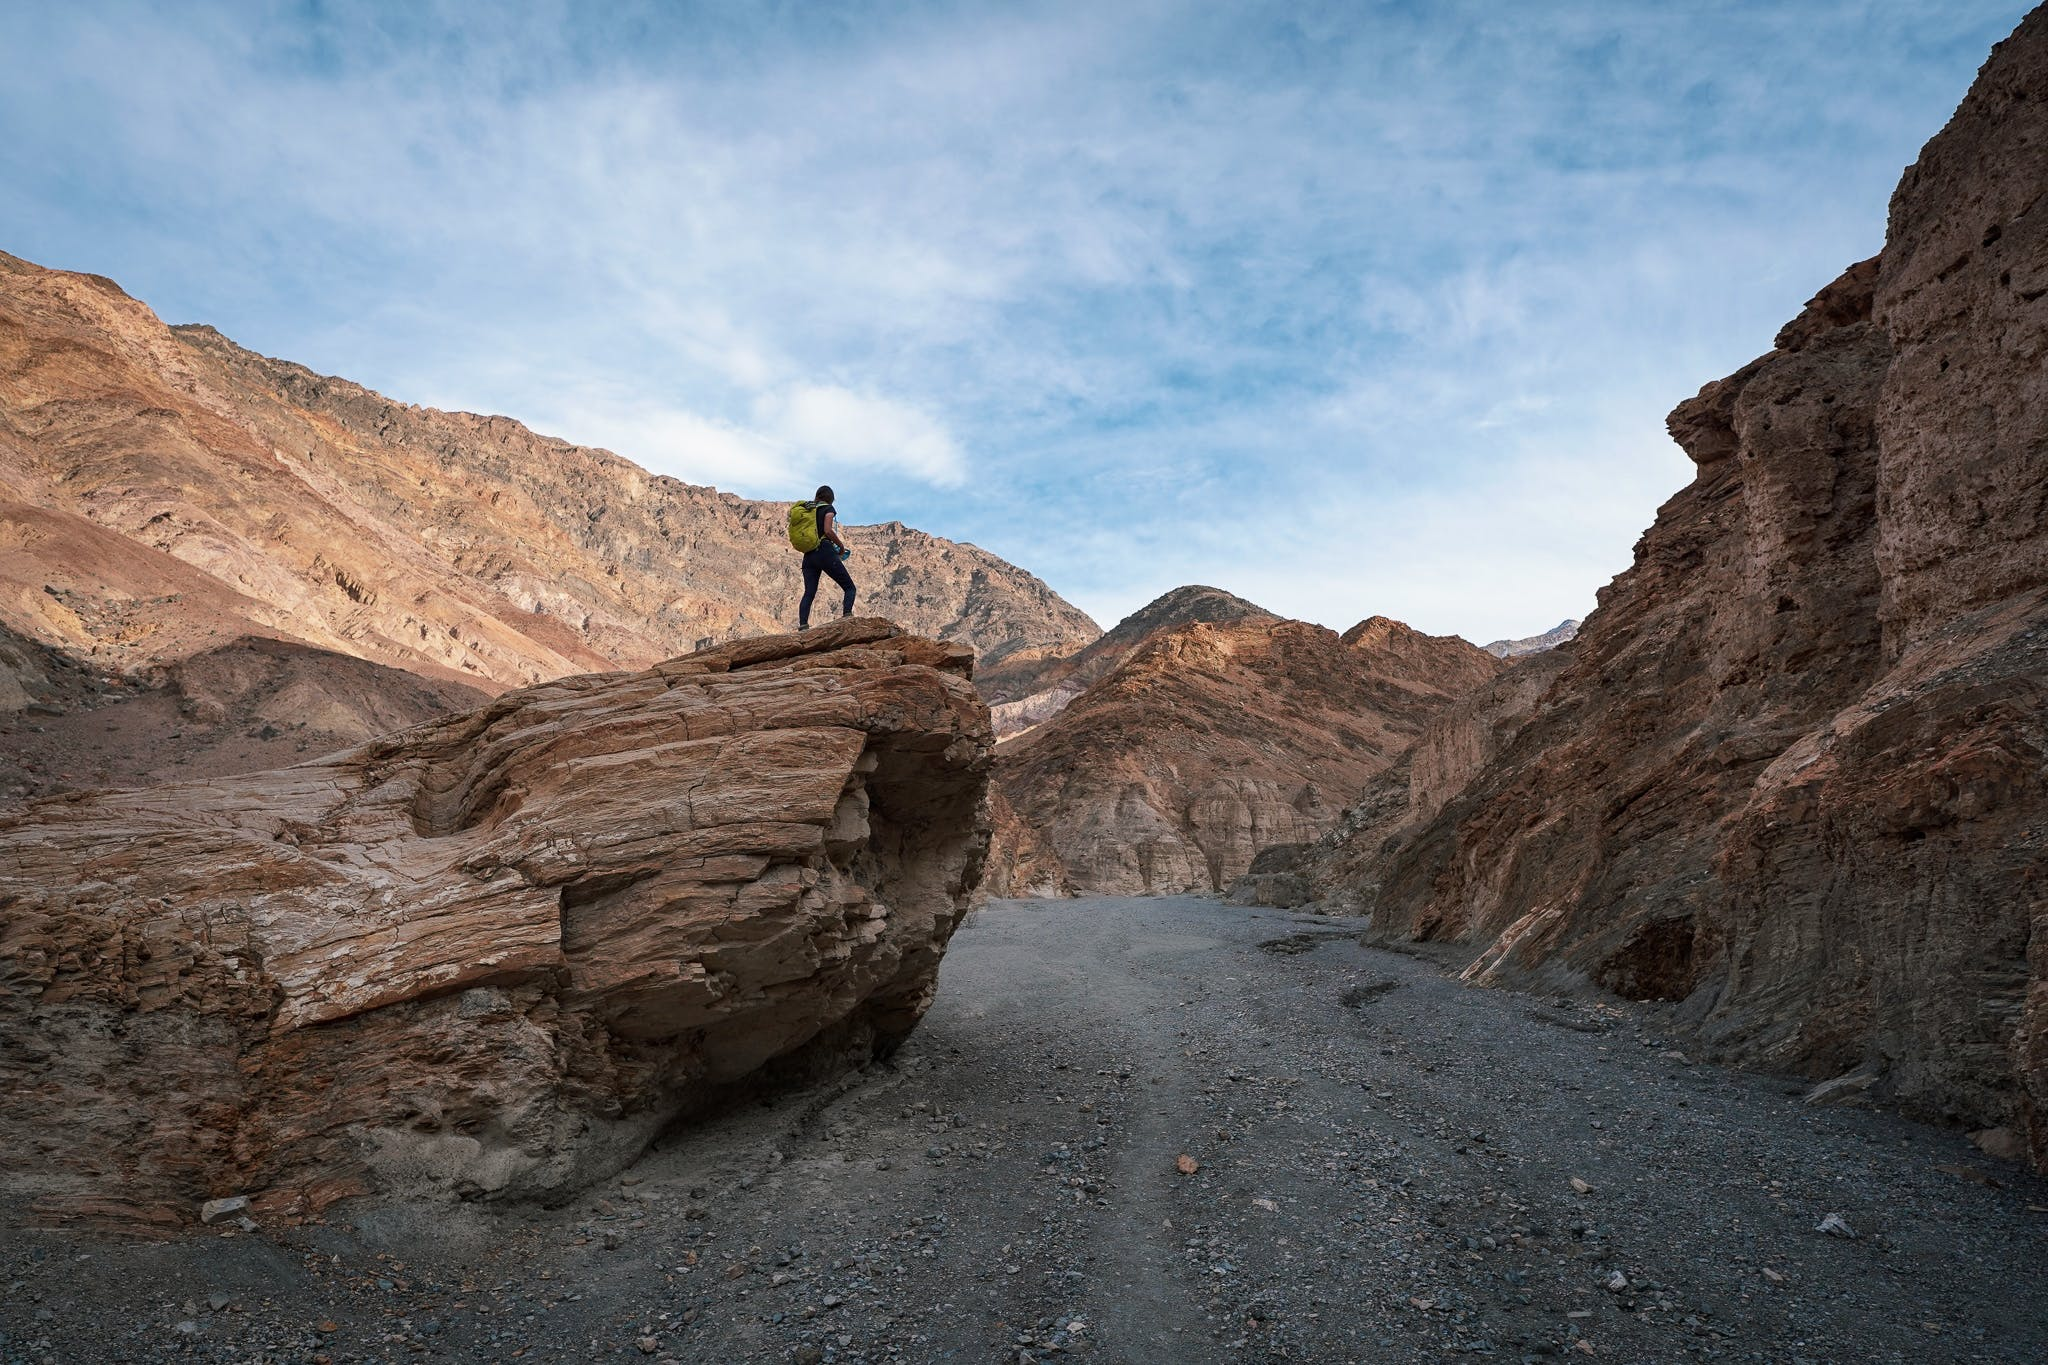 Woman on a large boulder overlooking Mosaic Canyon in Death Valley National Park